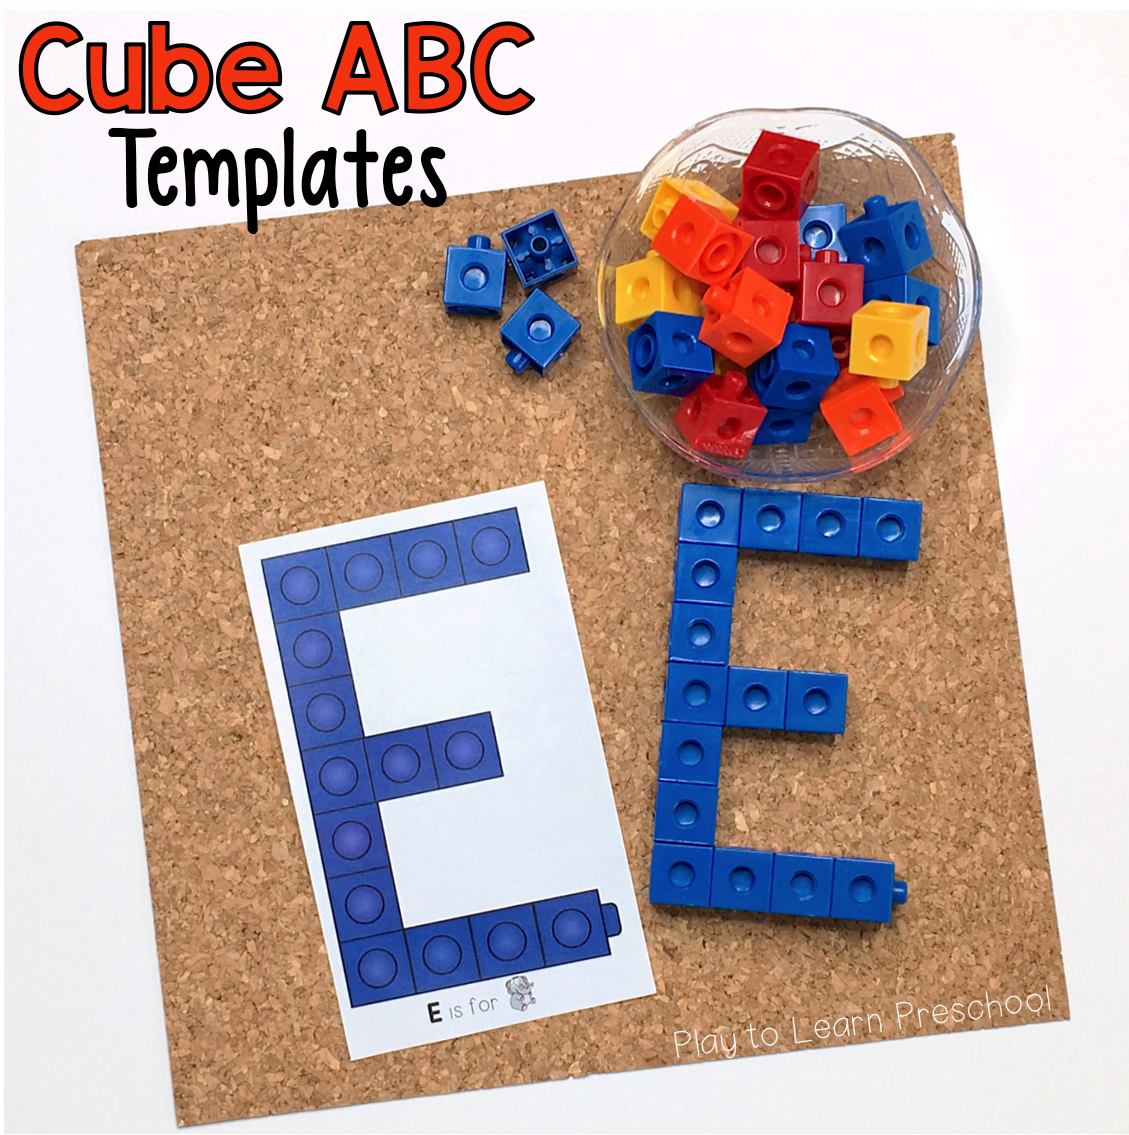 Print These For Your Literacy Center Young Children Can Make Each Of The Upper Case Letters